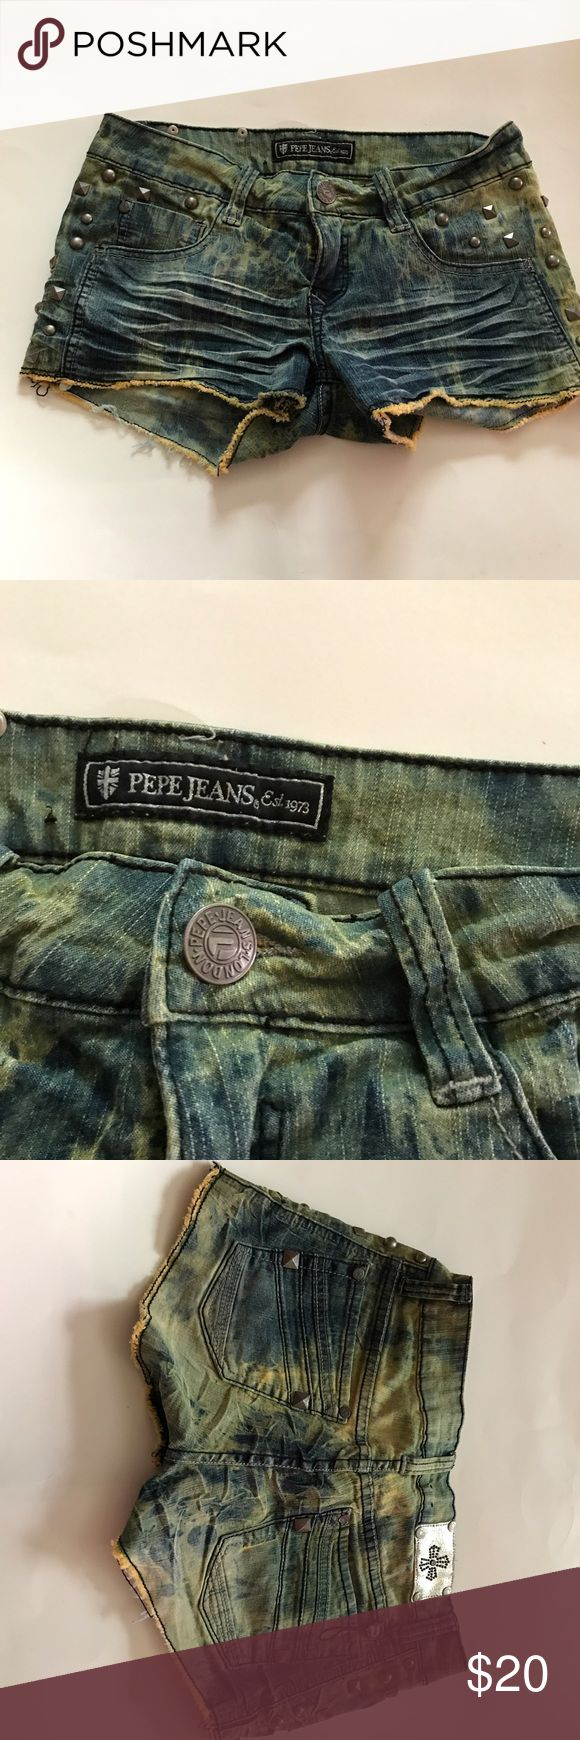 PePe Jeans  Shorts size 29 good condition size 29 with studs on them. Pepe Jeans Shorts